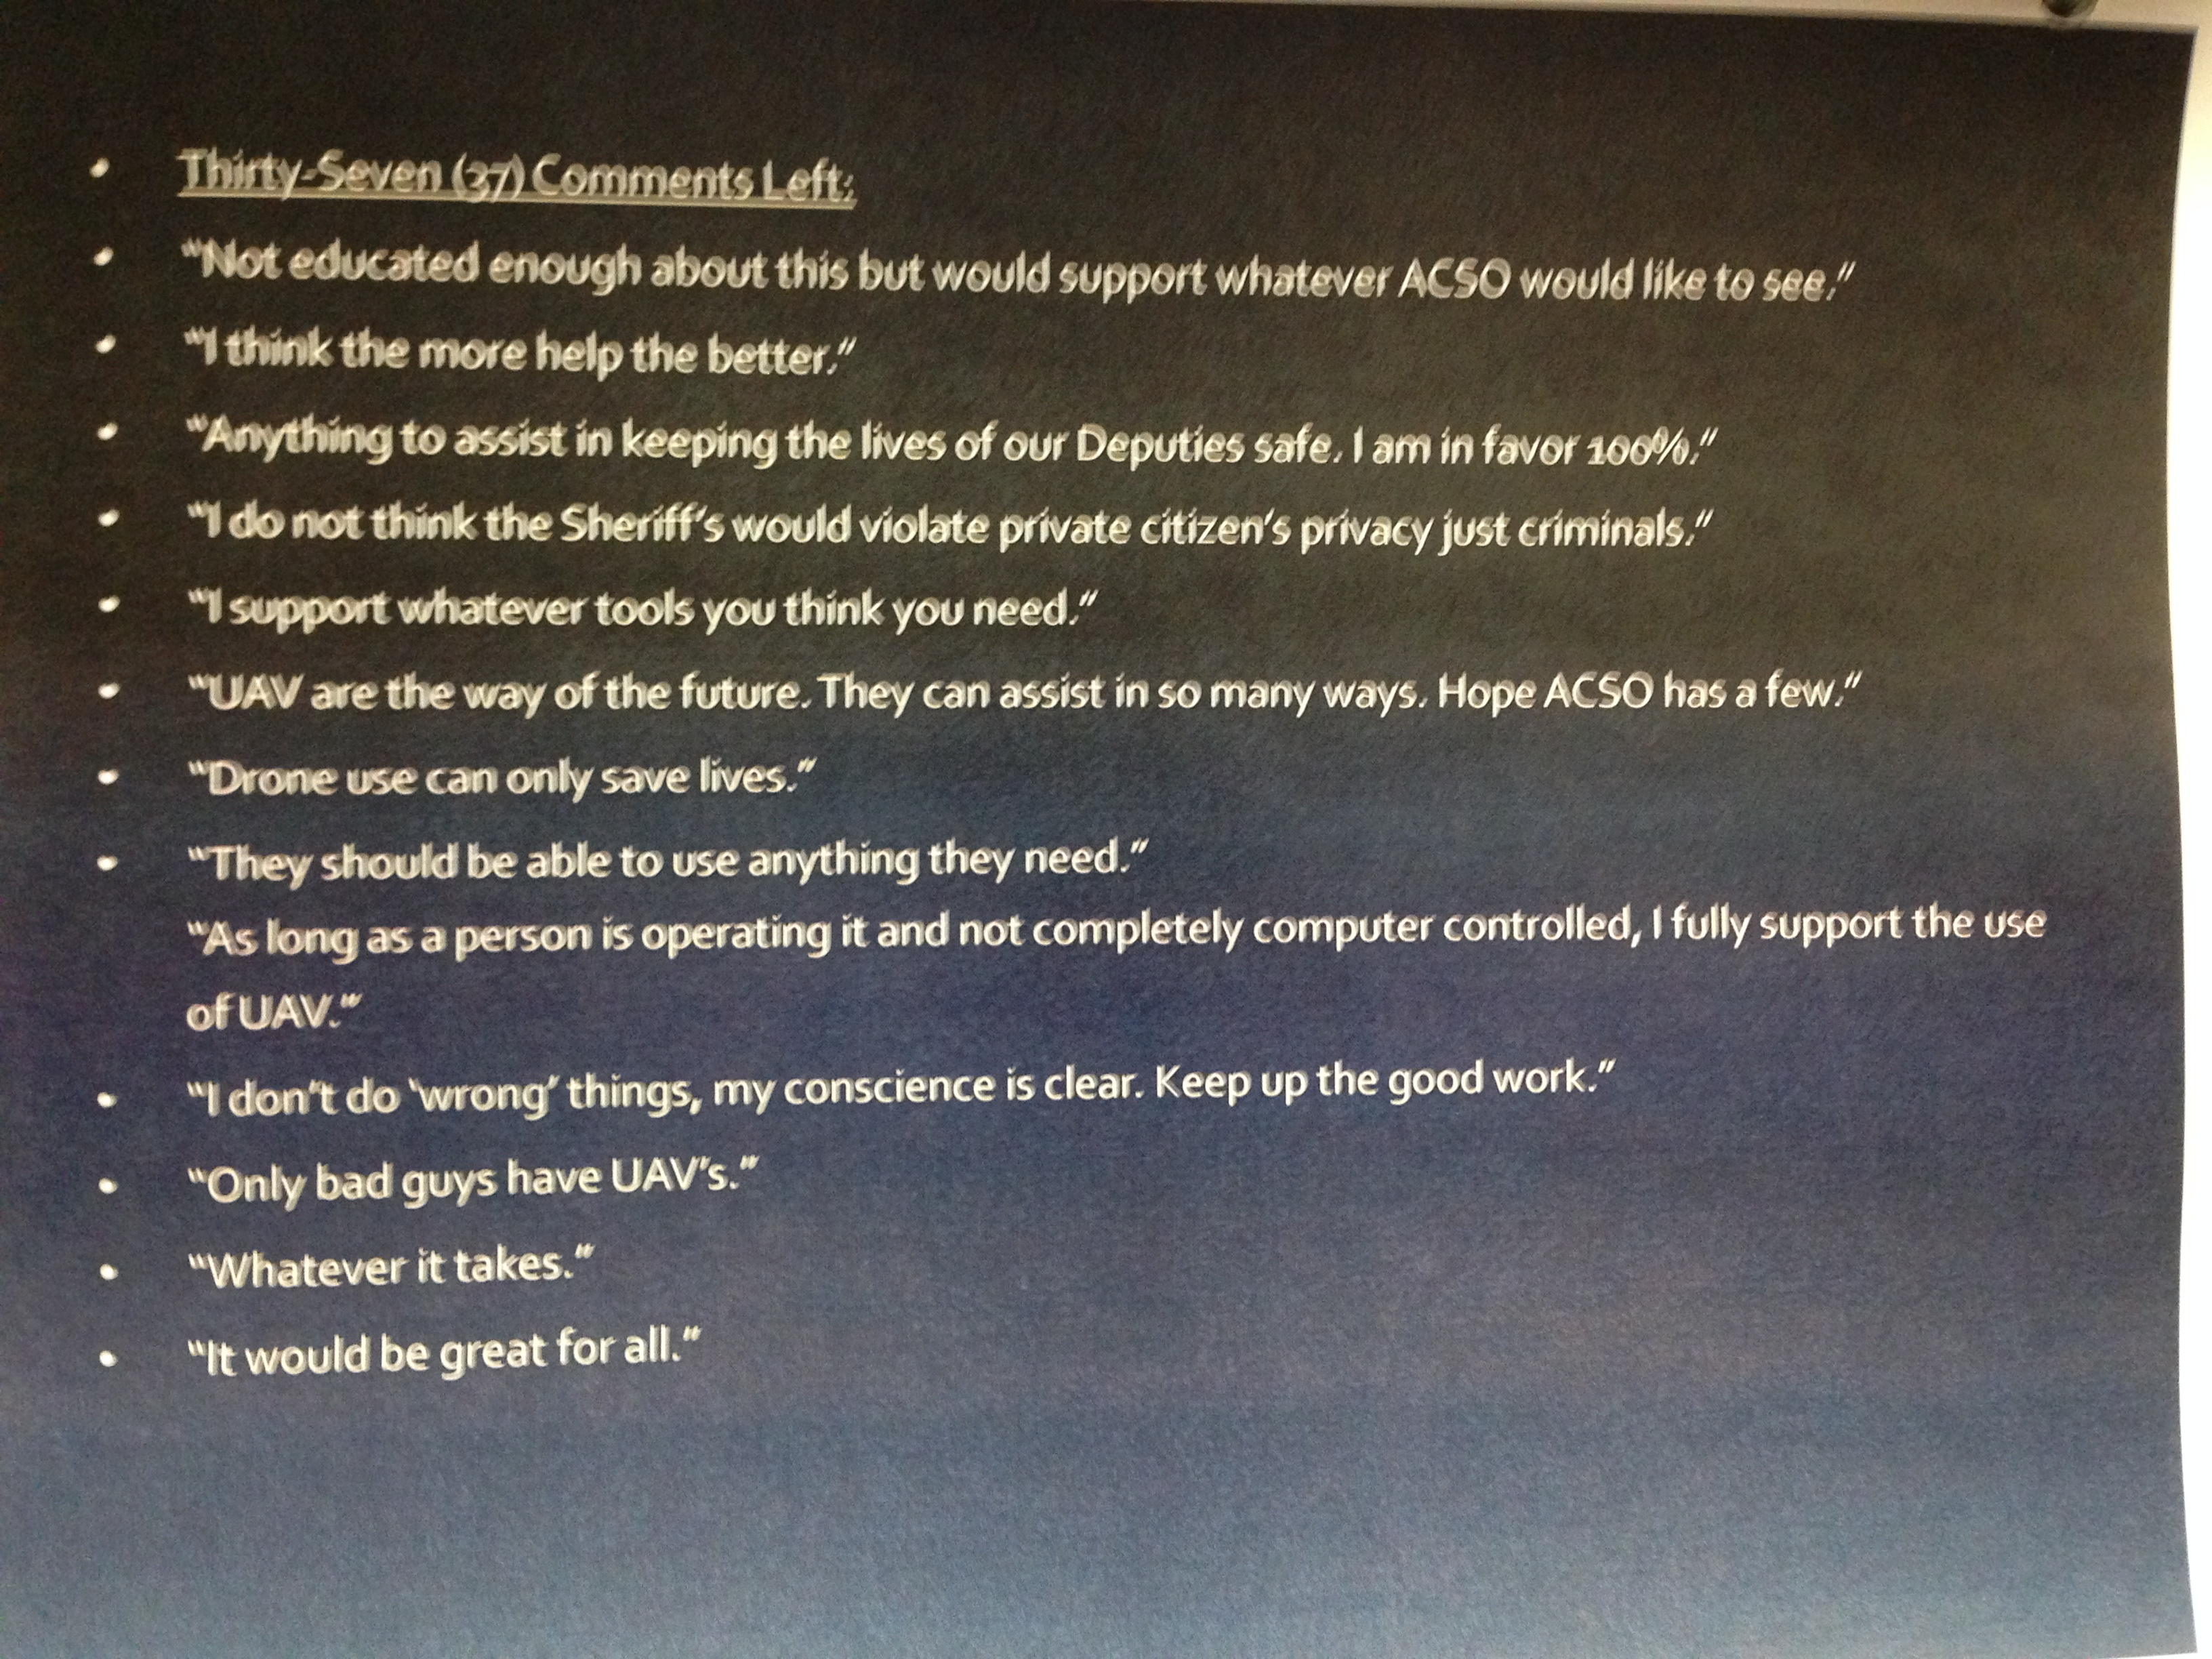 Drone supporters left some comments at an ACSO event in September 2014.